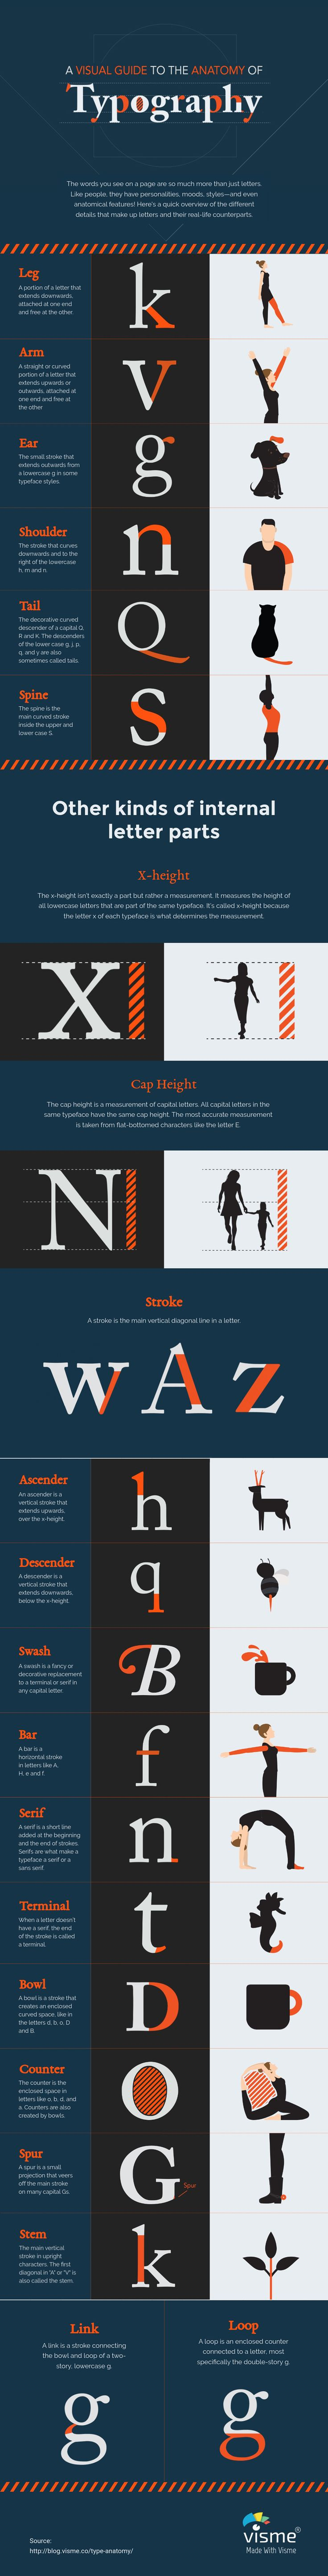 Type Anatomy A-Visual-Guide-to-the-Anatomy-of-Typography-Infographic  http://blog.visme.co/type-anatomy/